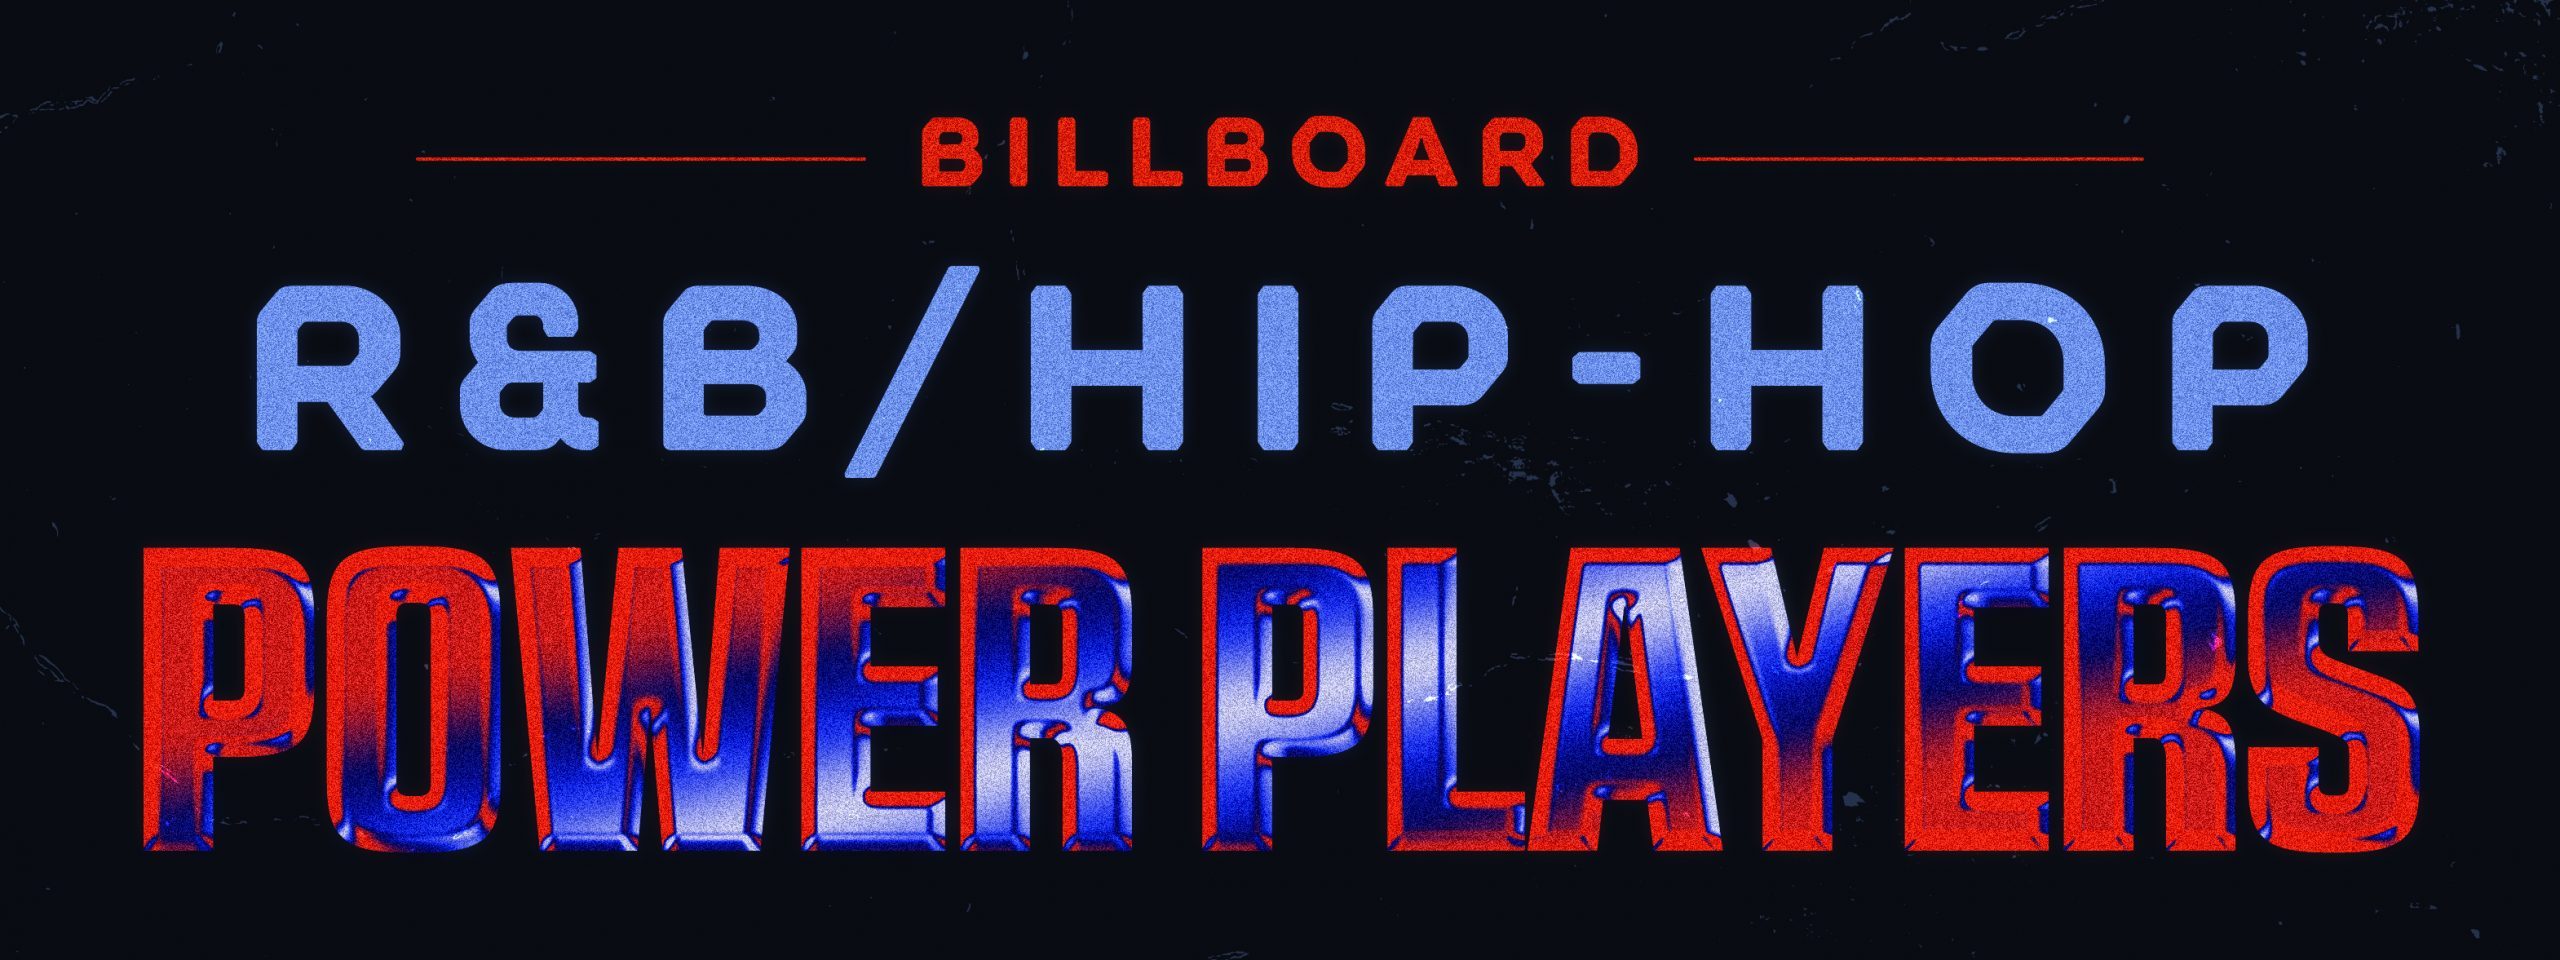 The Orchard's Mitch Dudley and Naji Grampus Named Billboard R&B/Hip-Hop Power Players